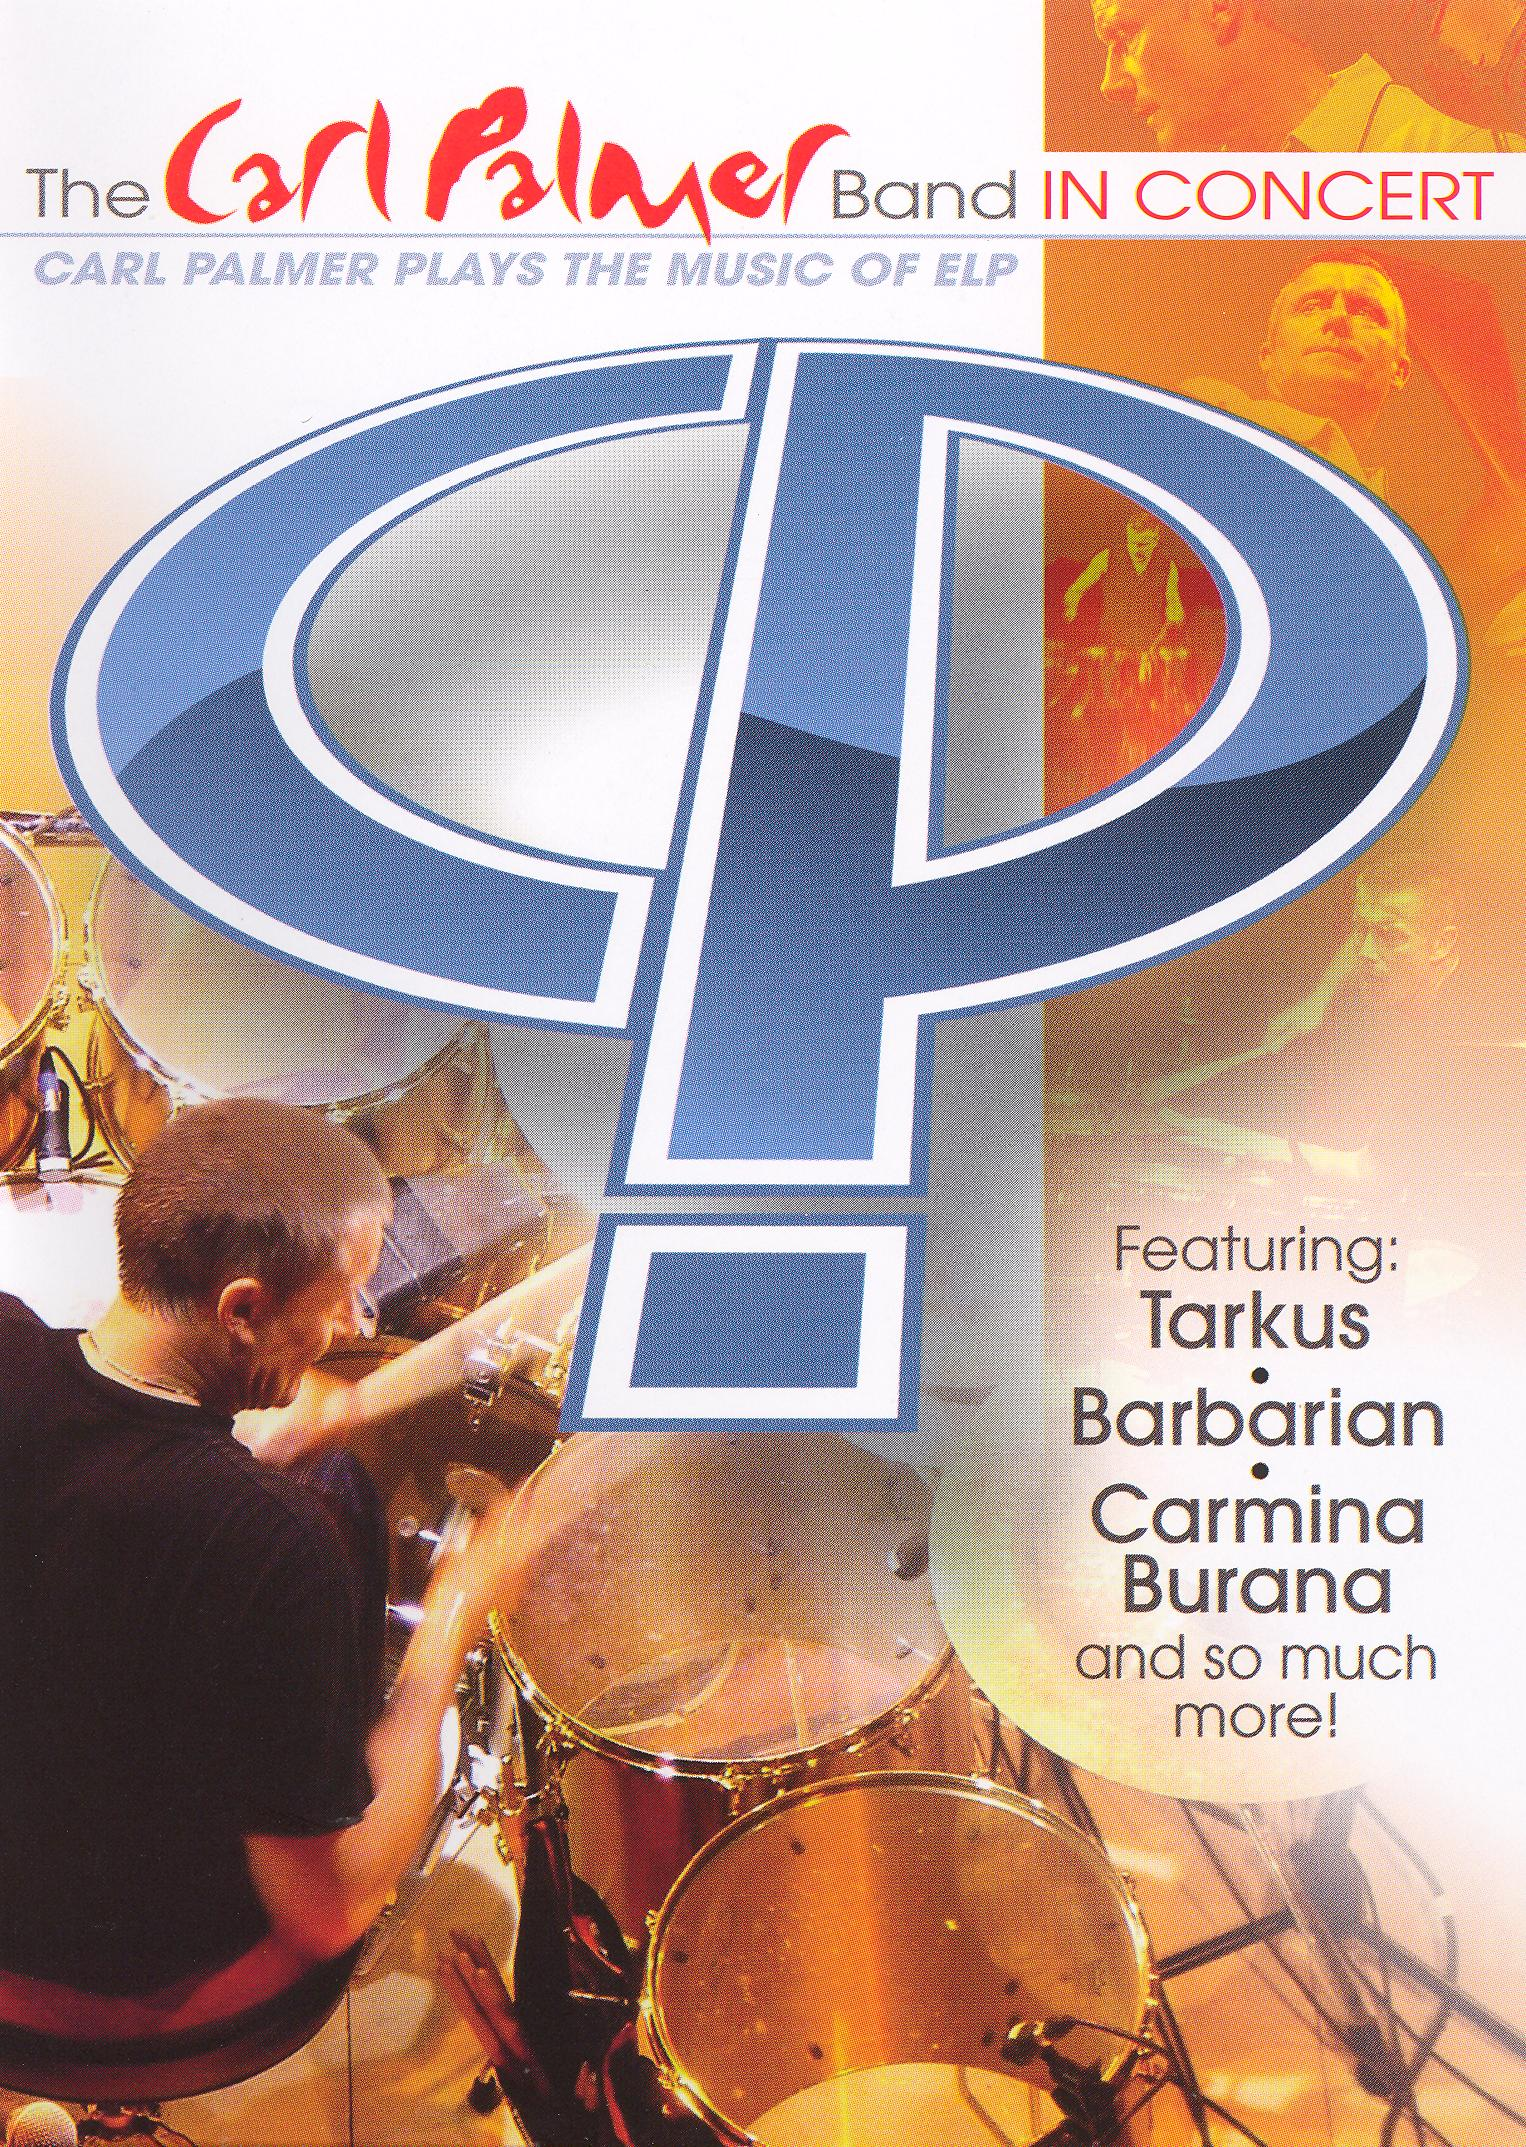 The Carl Palmer Band in Concert